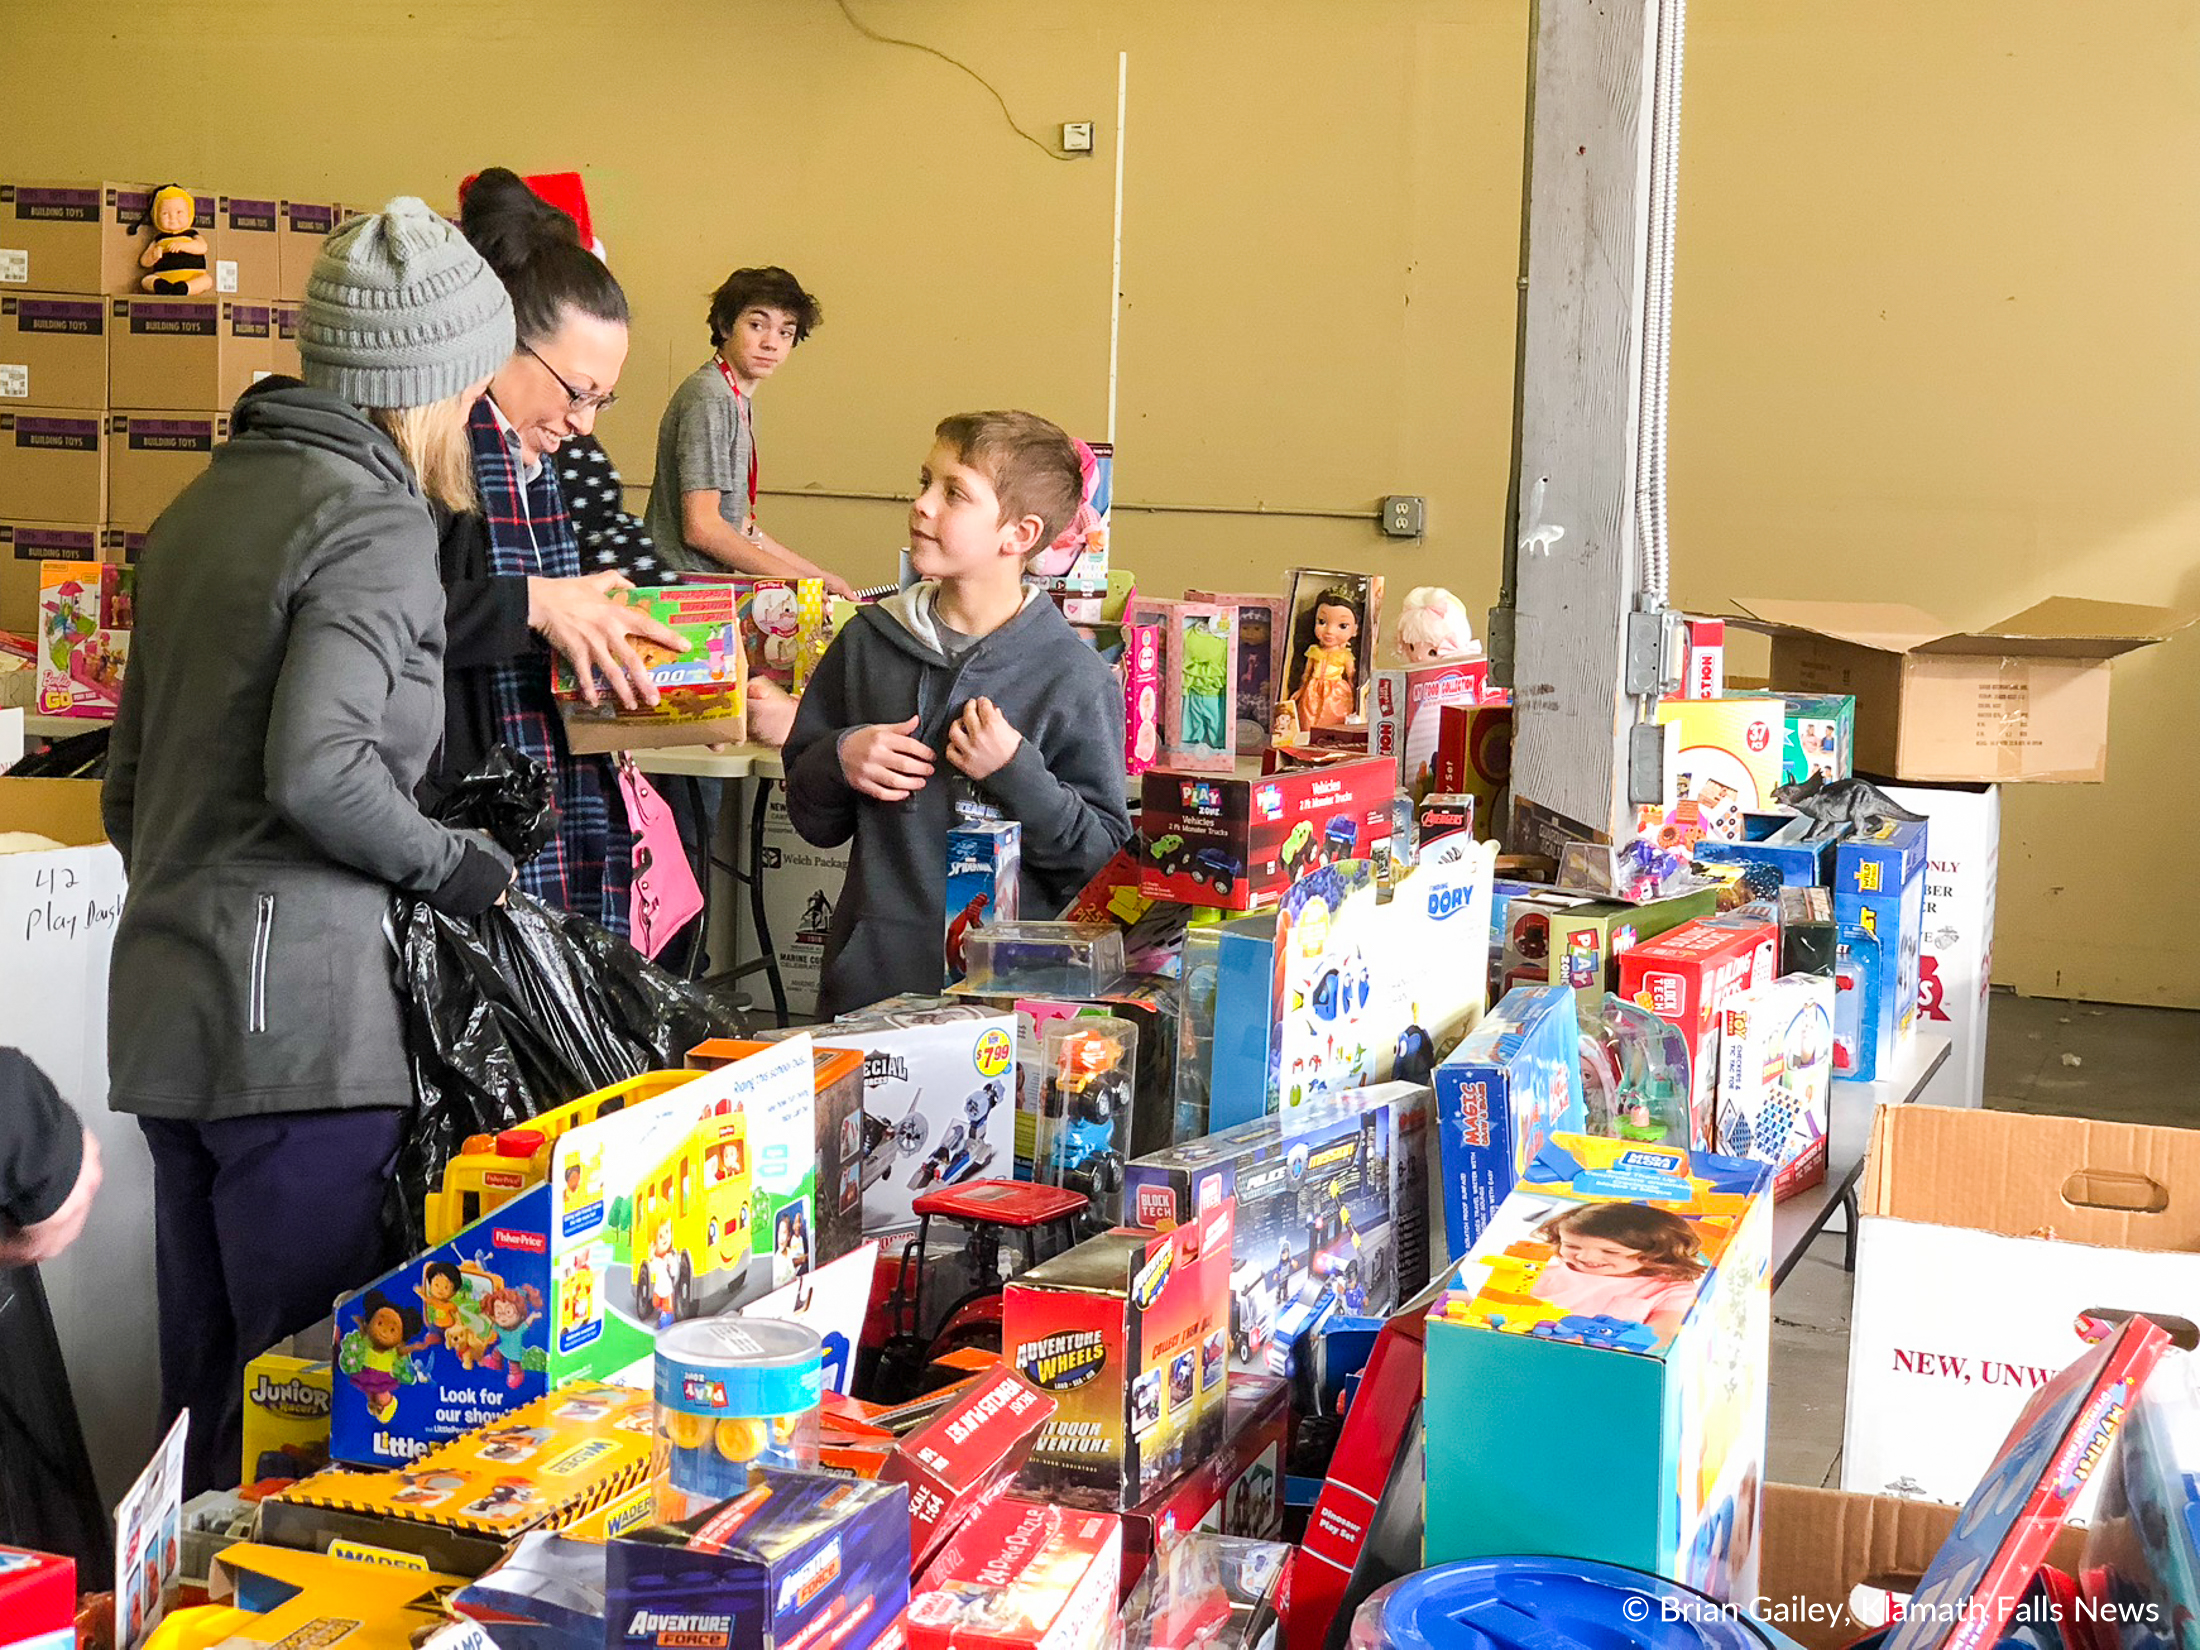 Distribution Day at Toys for Tots, Klamath Falls. (Brian Gailey)